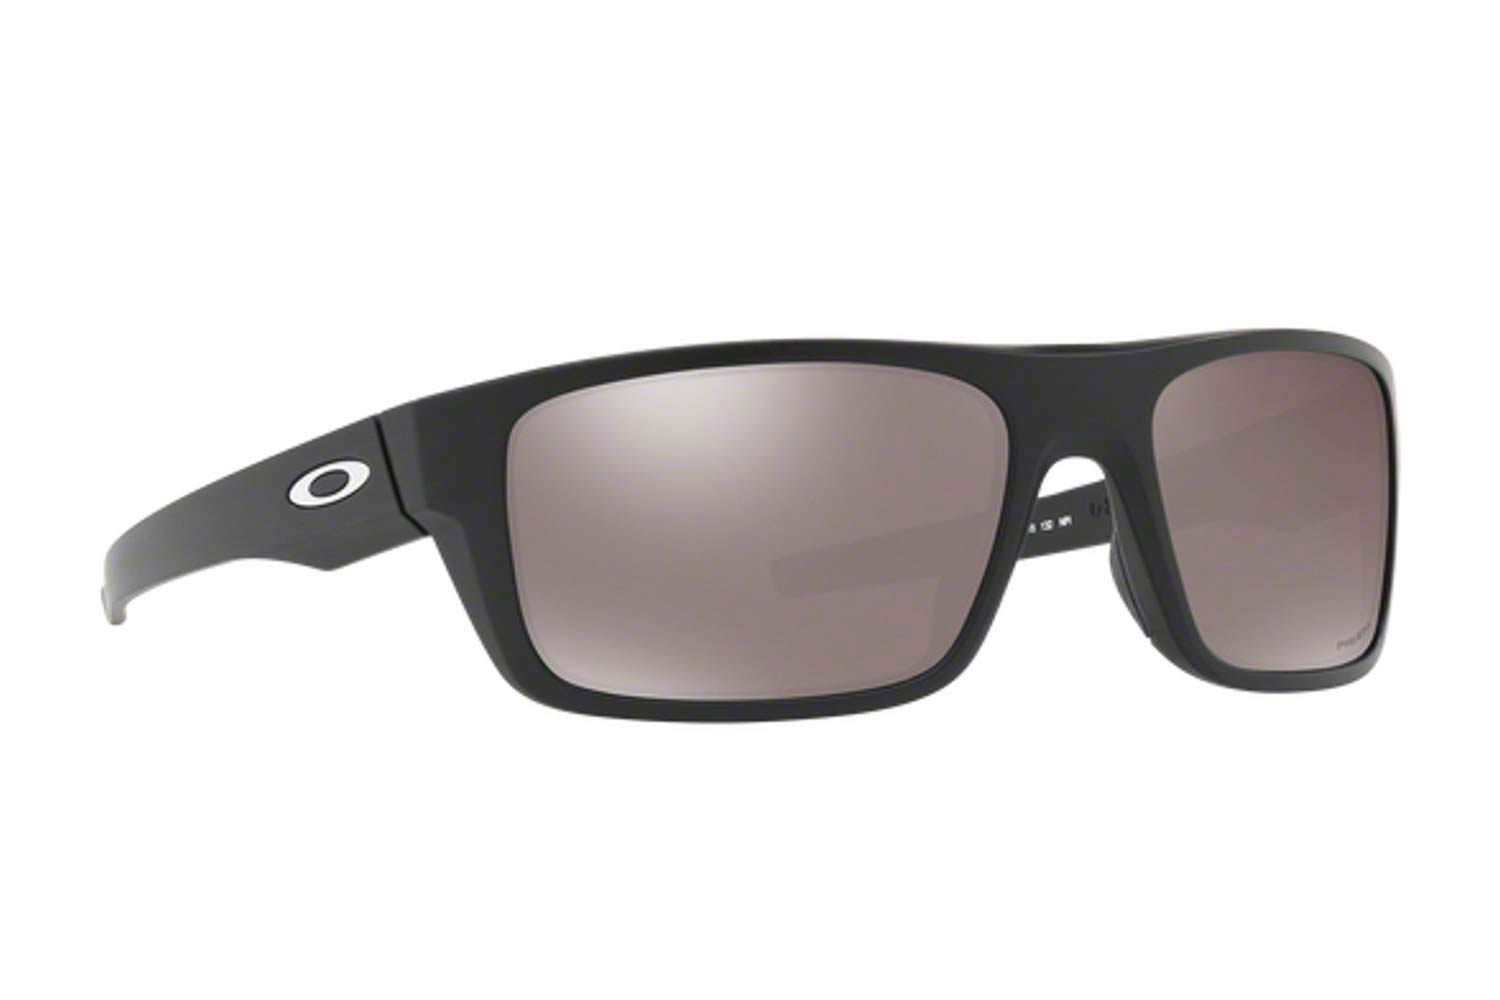 44b3b0427b6 SUNGLASSES Oakley DROP-POINT 9367 08 PRIZM® BLACK POLARIZED